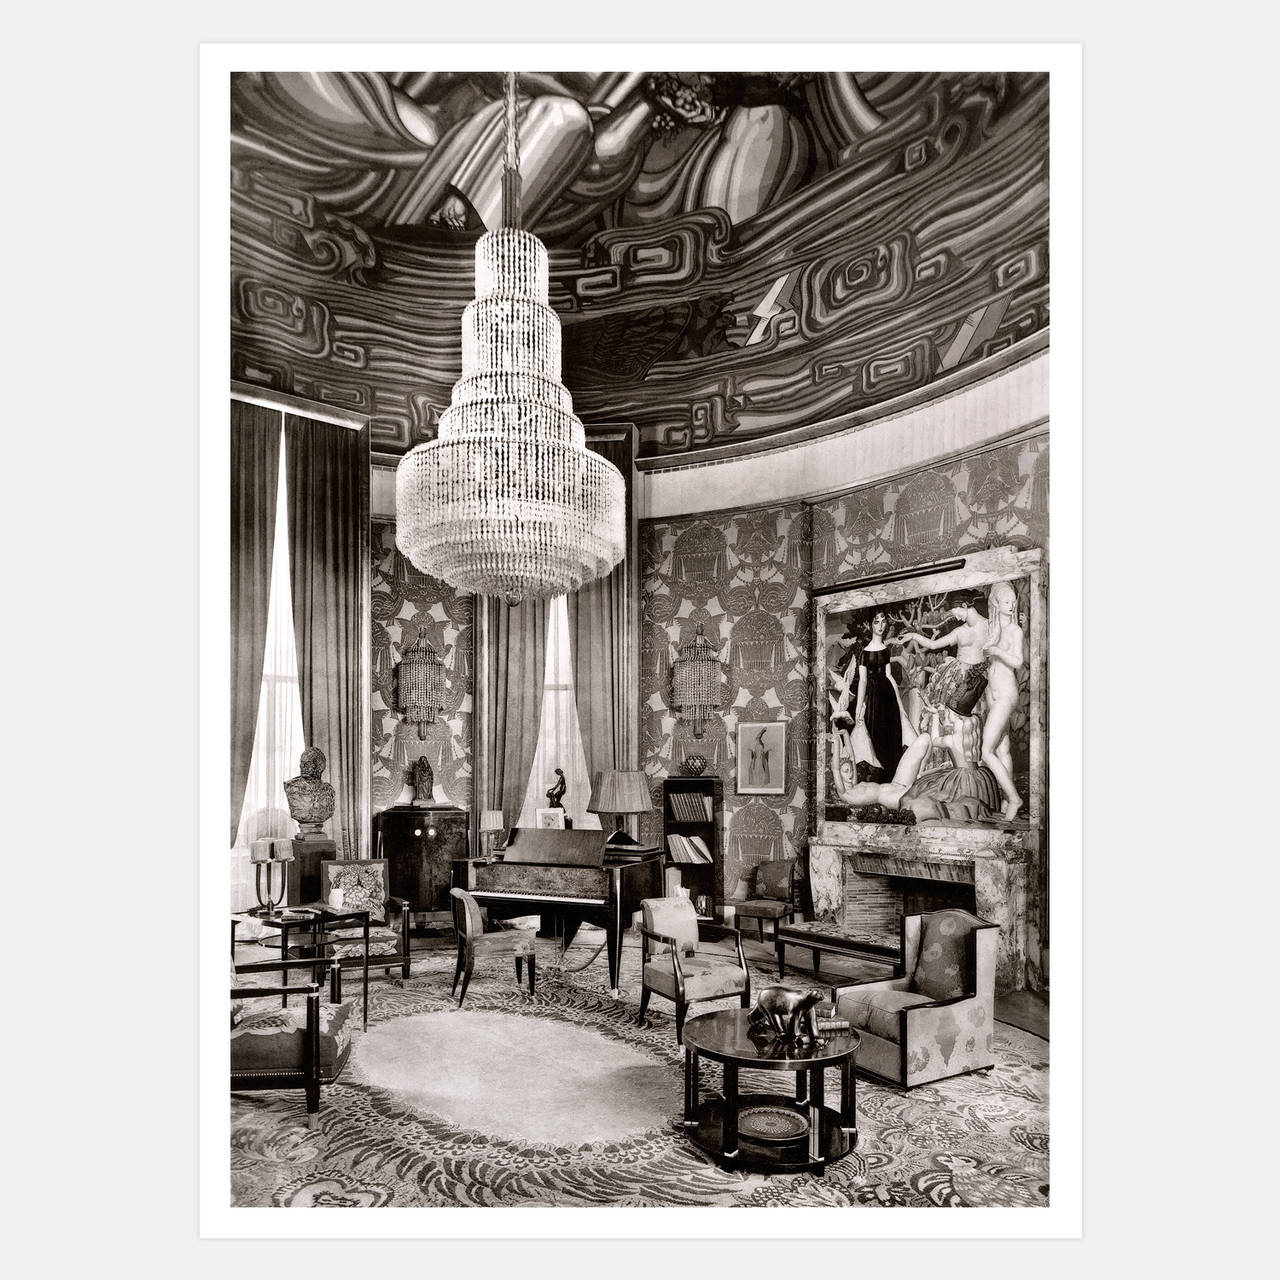 mile jacques ruhlmann grand salon paris c1925 print at 1stdibs. Black Bedroom Furniture Sets. Home Design Ideas